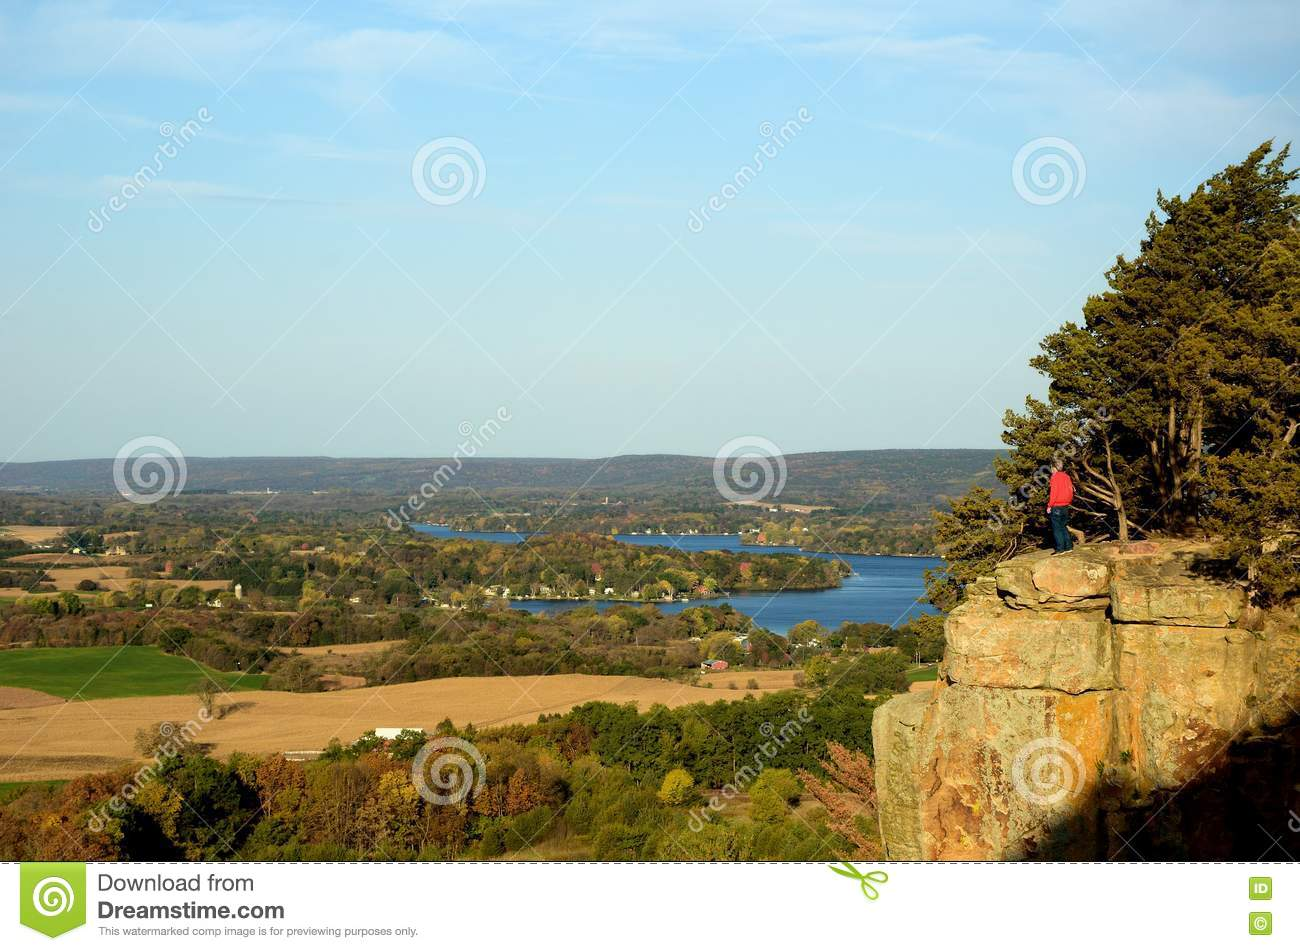 Man Standing on a Cliff at Gibraltar Rock State Natural Area